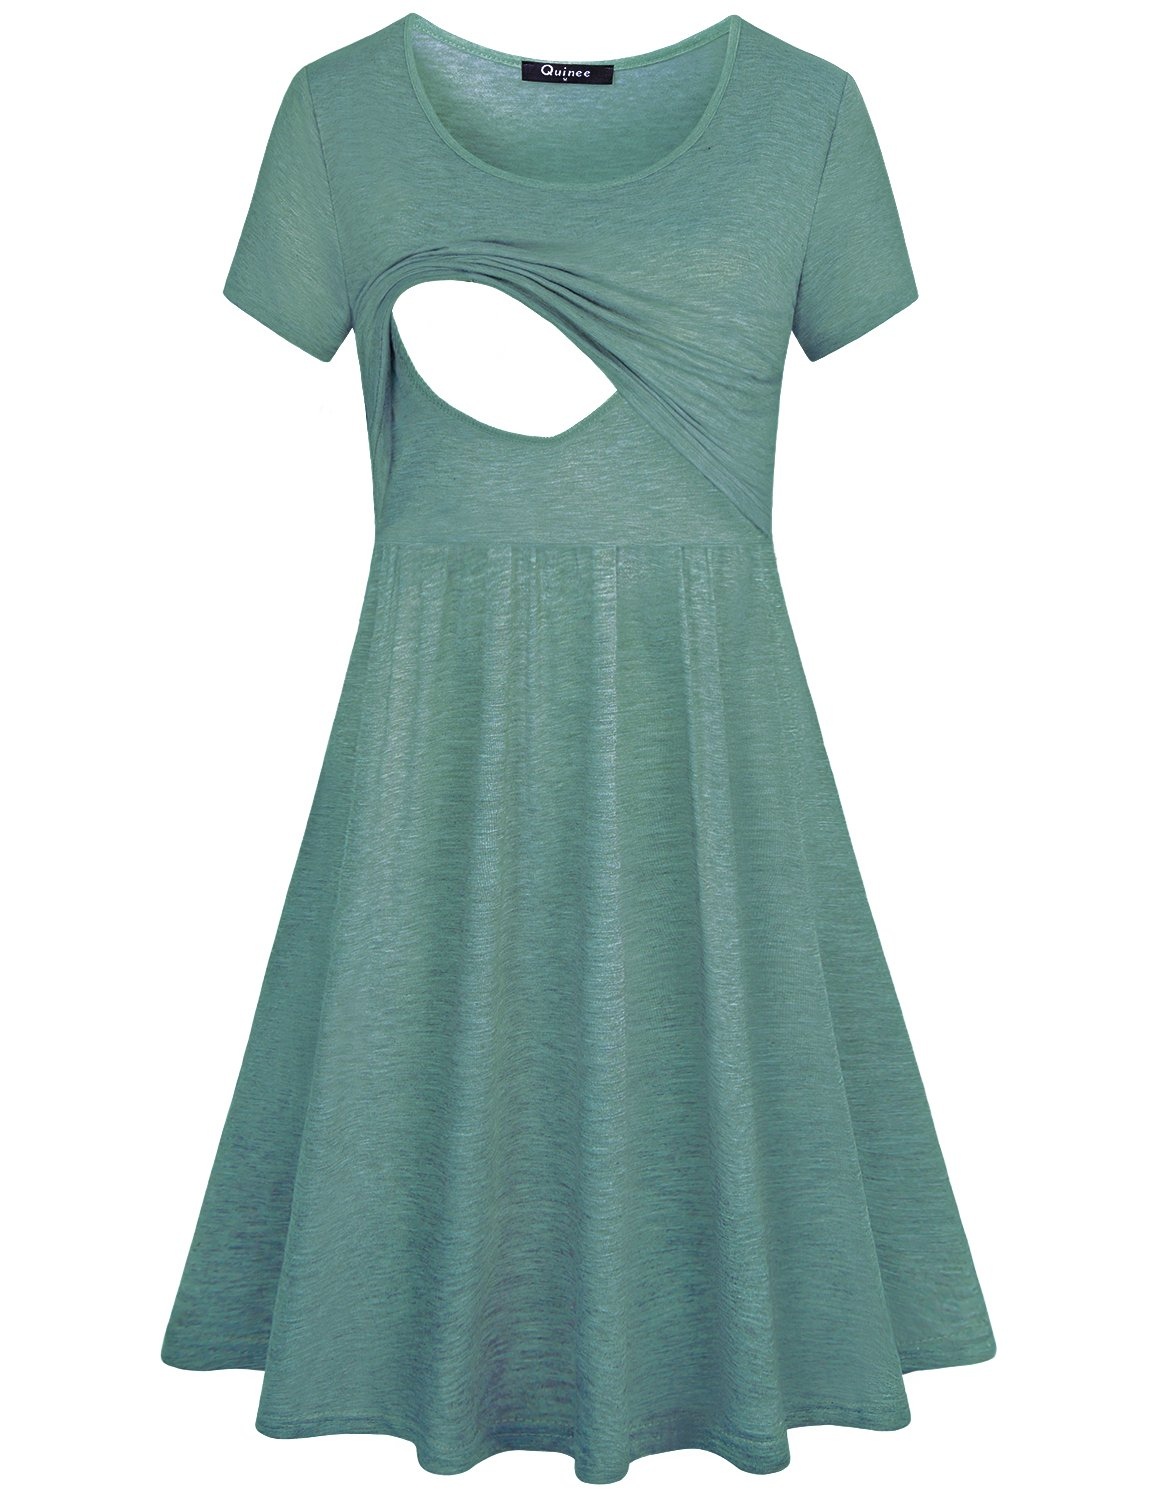 Quinee Maternity Nursing Dress, Short Sleeve Double Layers Nicely Wearing with Leggings Stylish Lersure Style Function Top Good Choice for Pregnant Women Grey-Green M